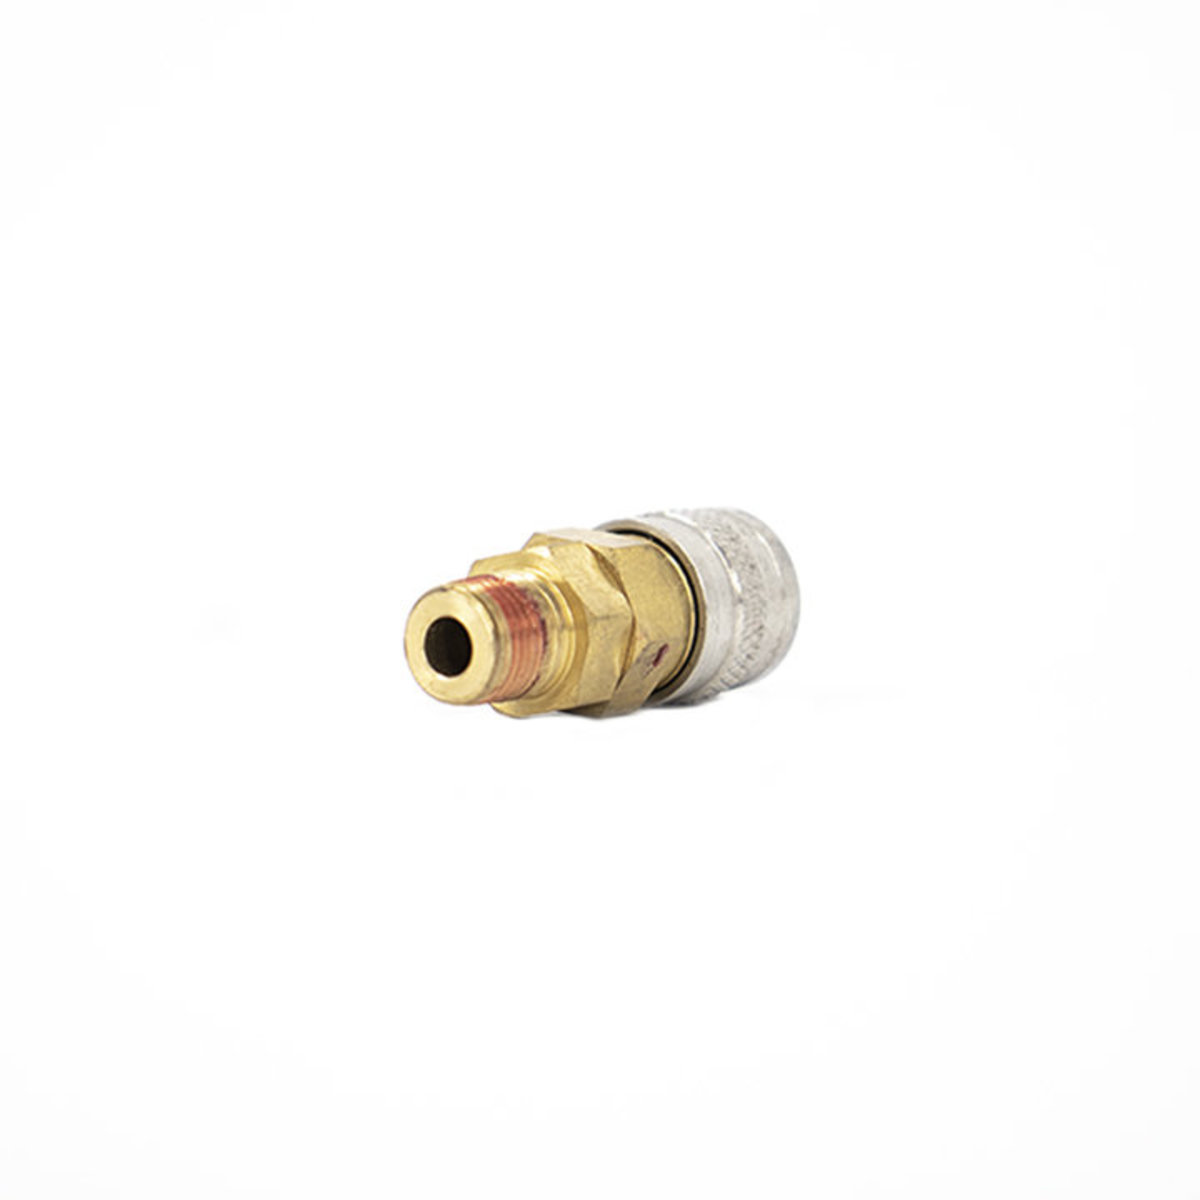 View larger image of Tank Kits/Parts - Valken SLP Female QD Connector